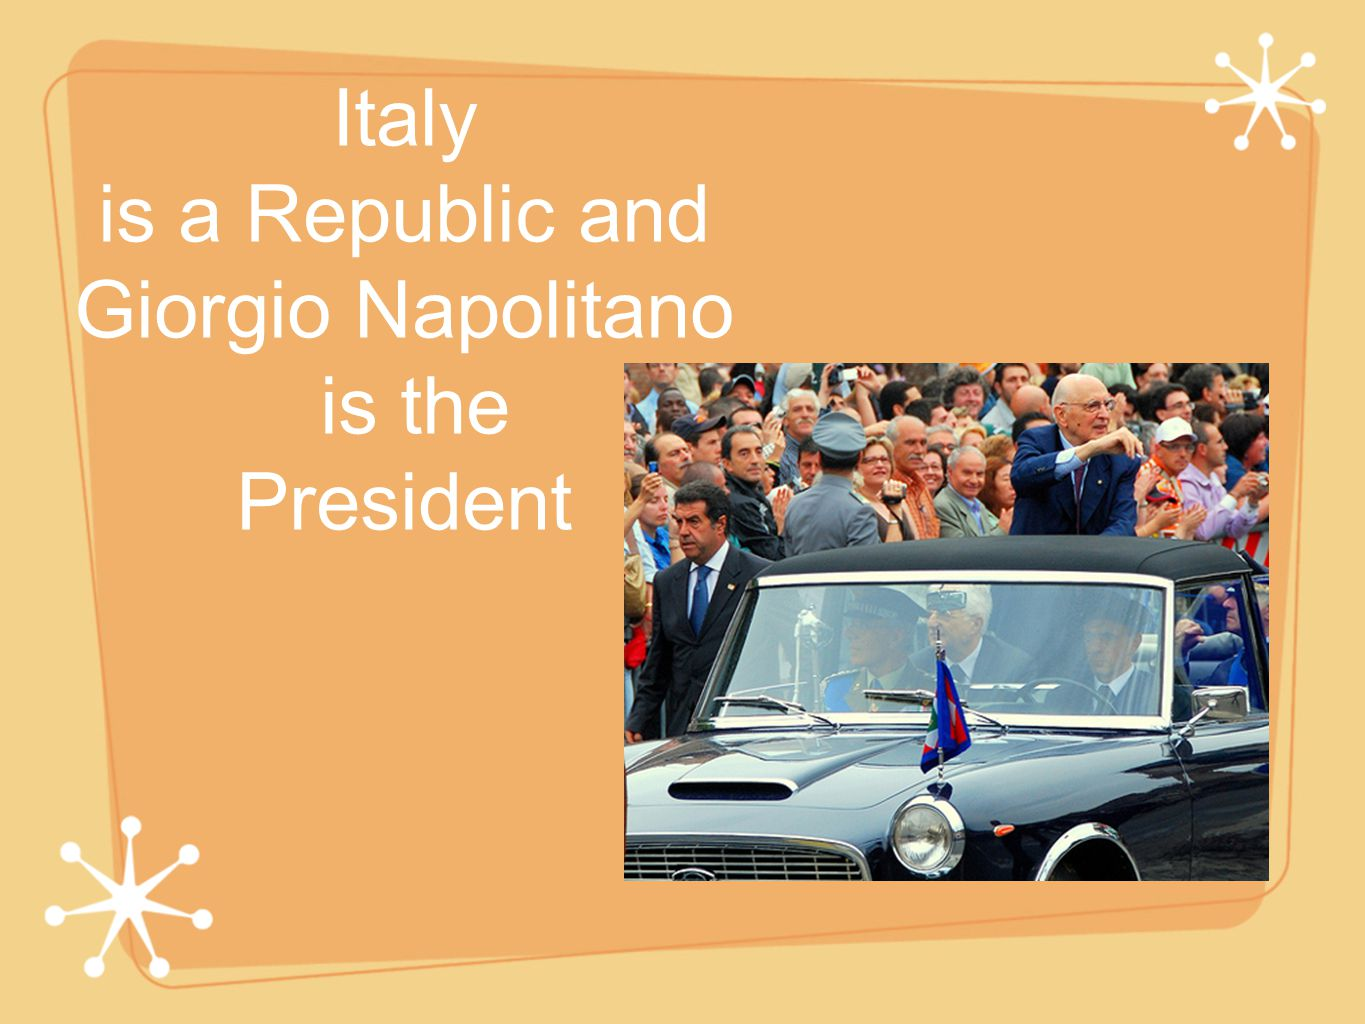 Italy is a Republic and Giorgio Napolitano is the President